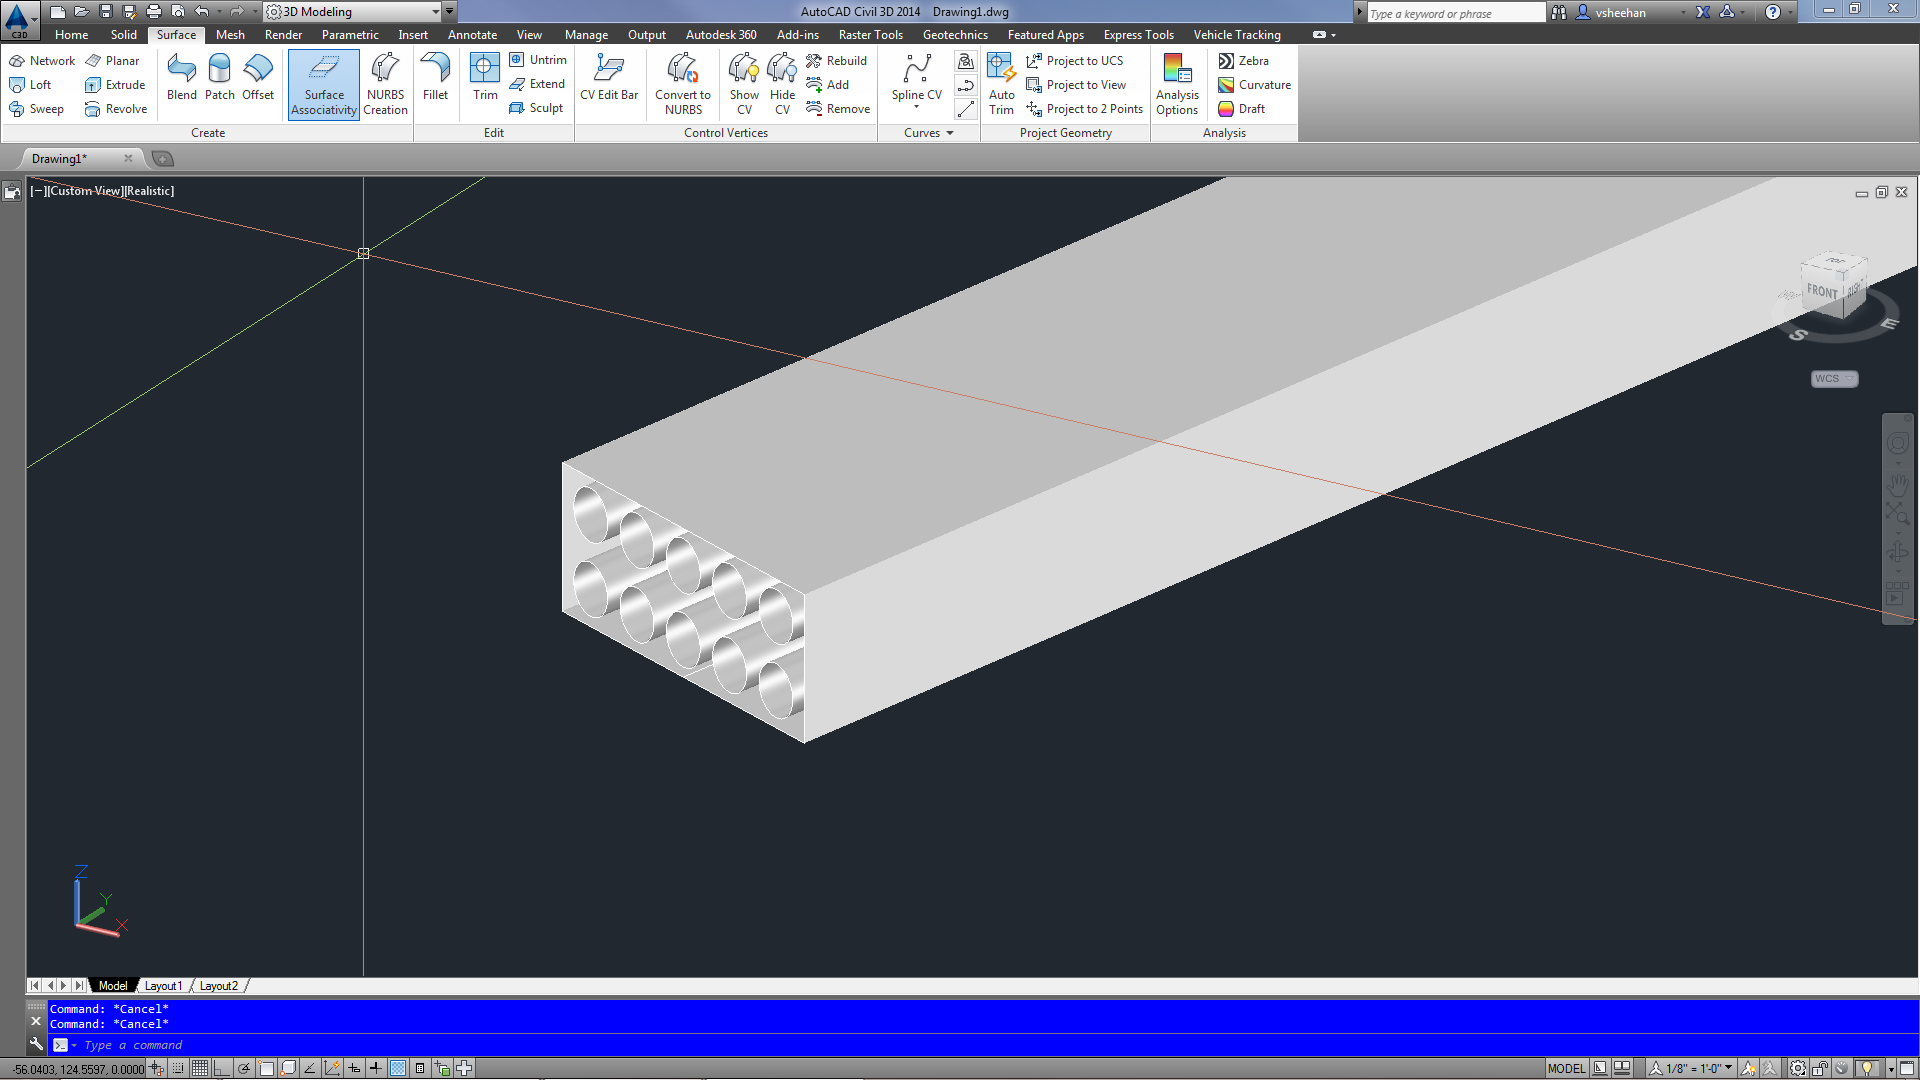 How Can I Draw Underground Ductbanks Using Civil 3d